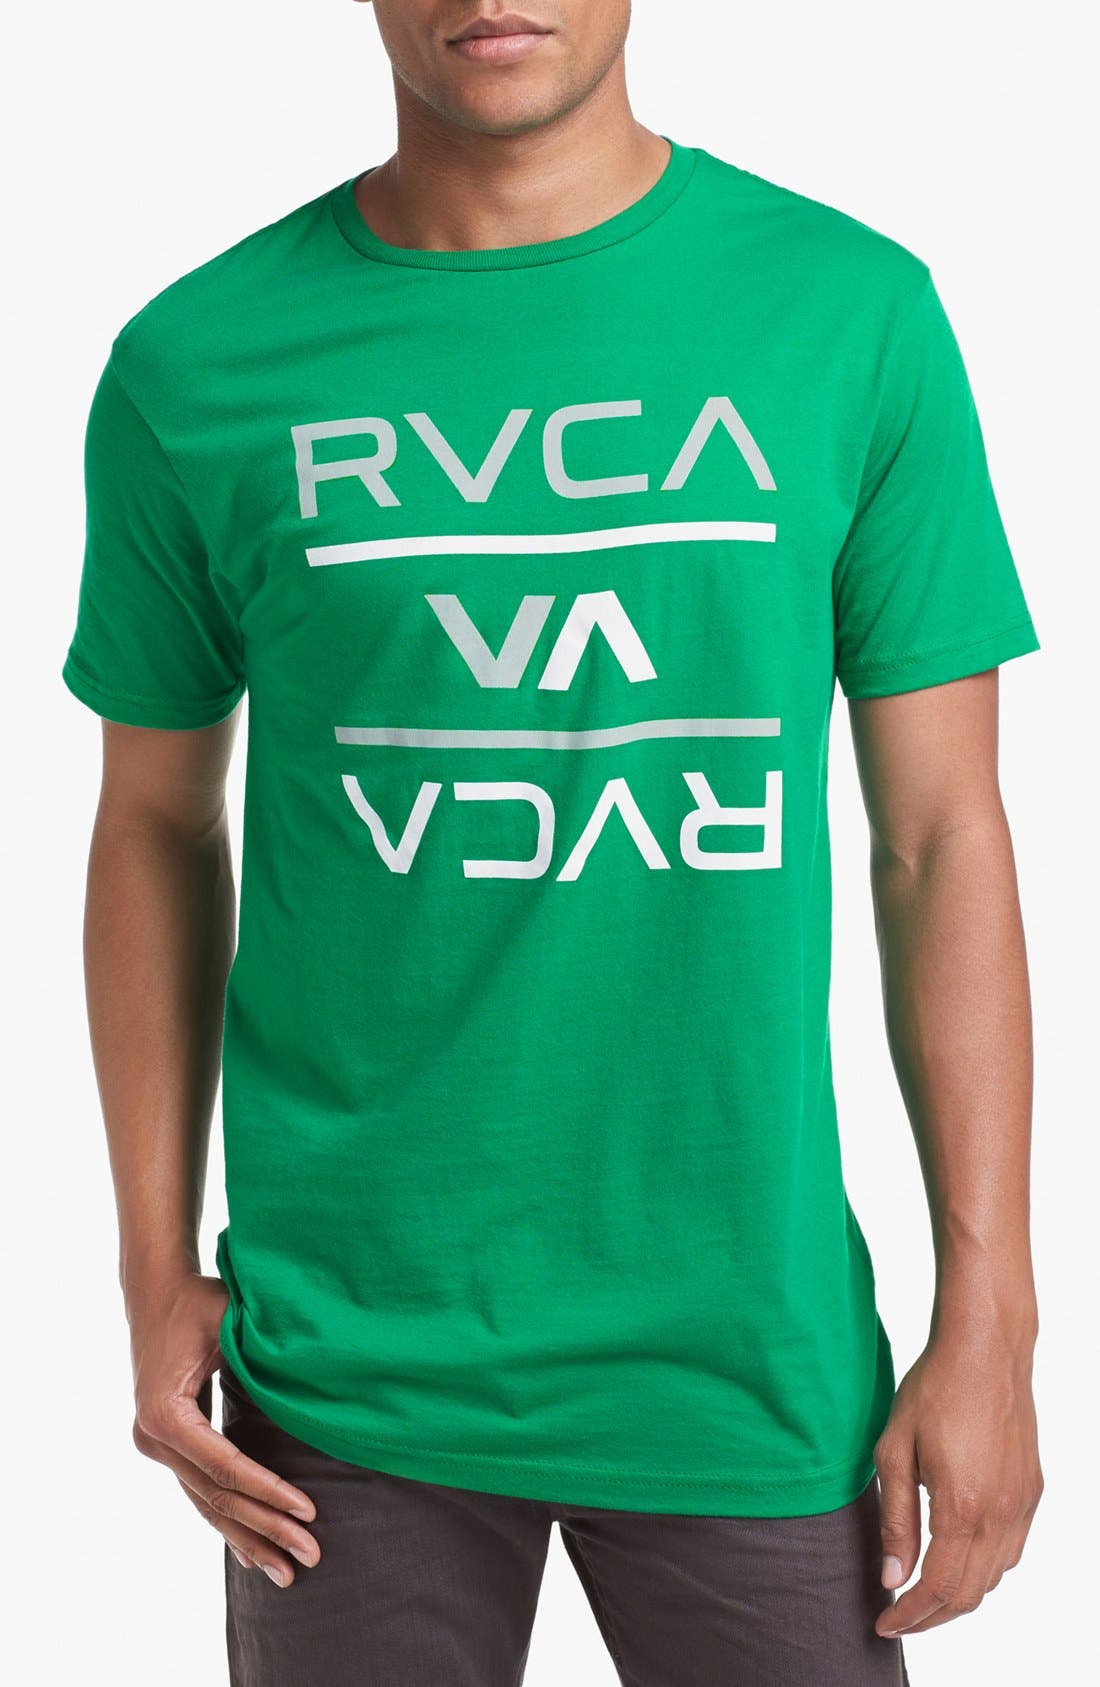 Alternate Image 1 Selected - RVCA 'Reversed' Graphic T-Shirt